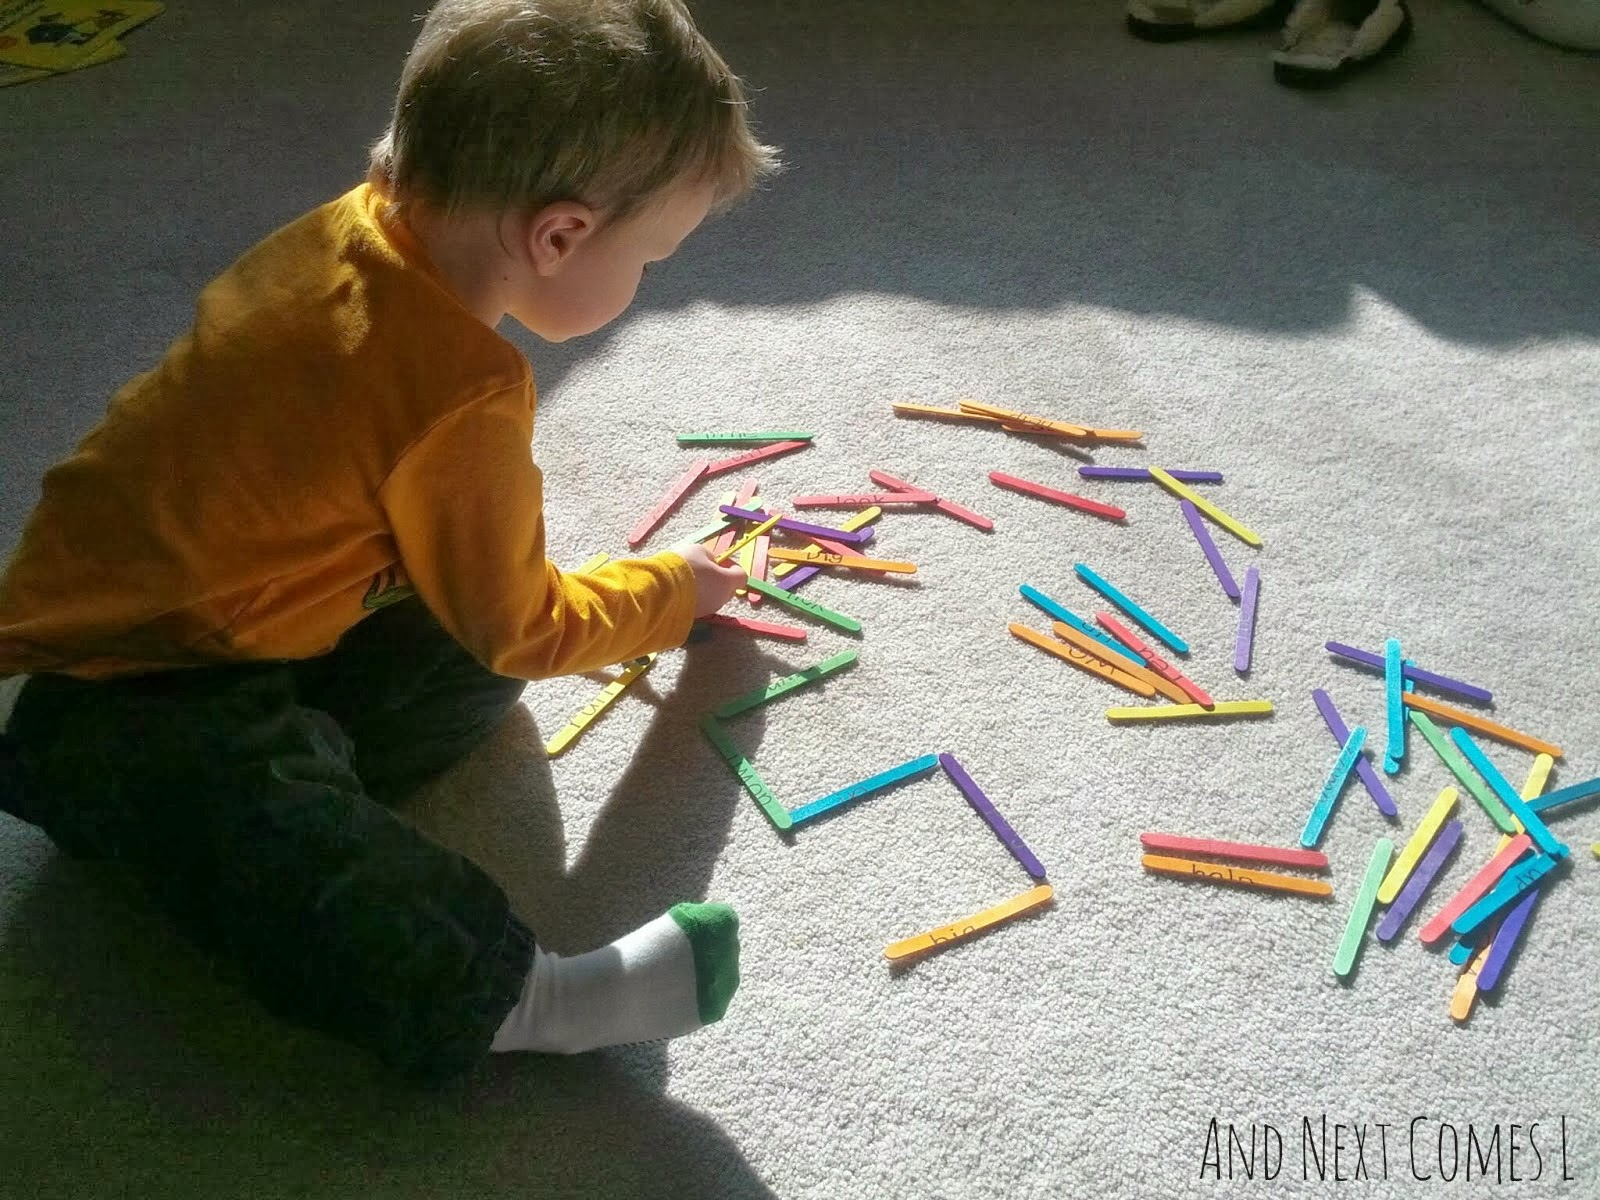 Child with hyperlexia making letters and numbers from And Next Comes L